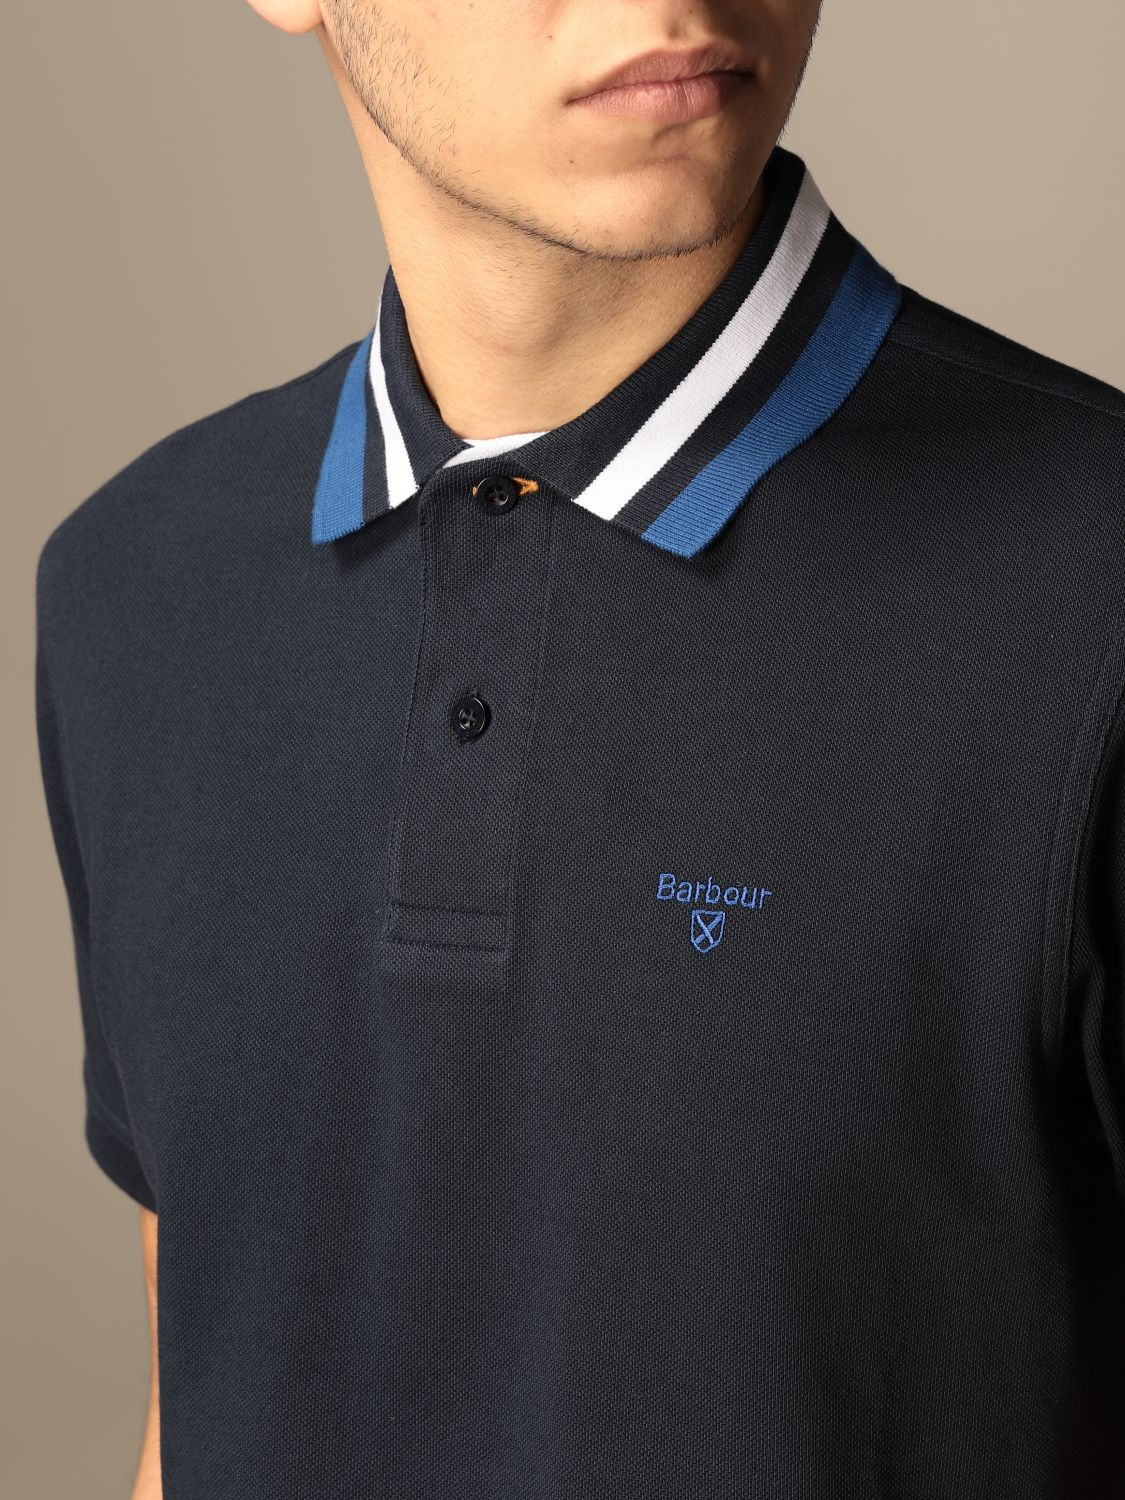 Polo Barbour: Pull homme Barbour bleu marine 3